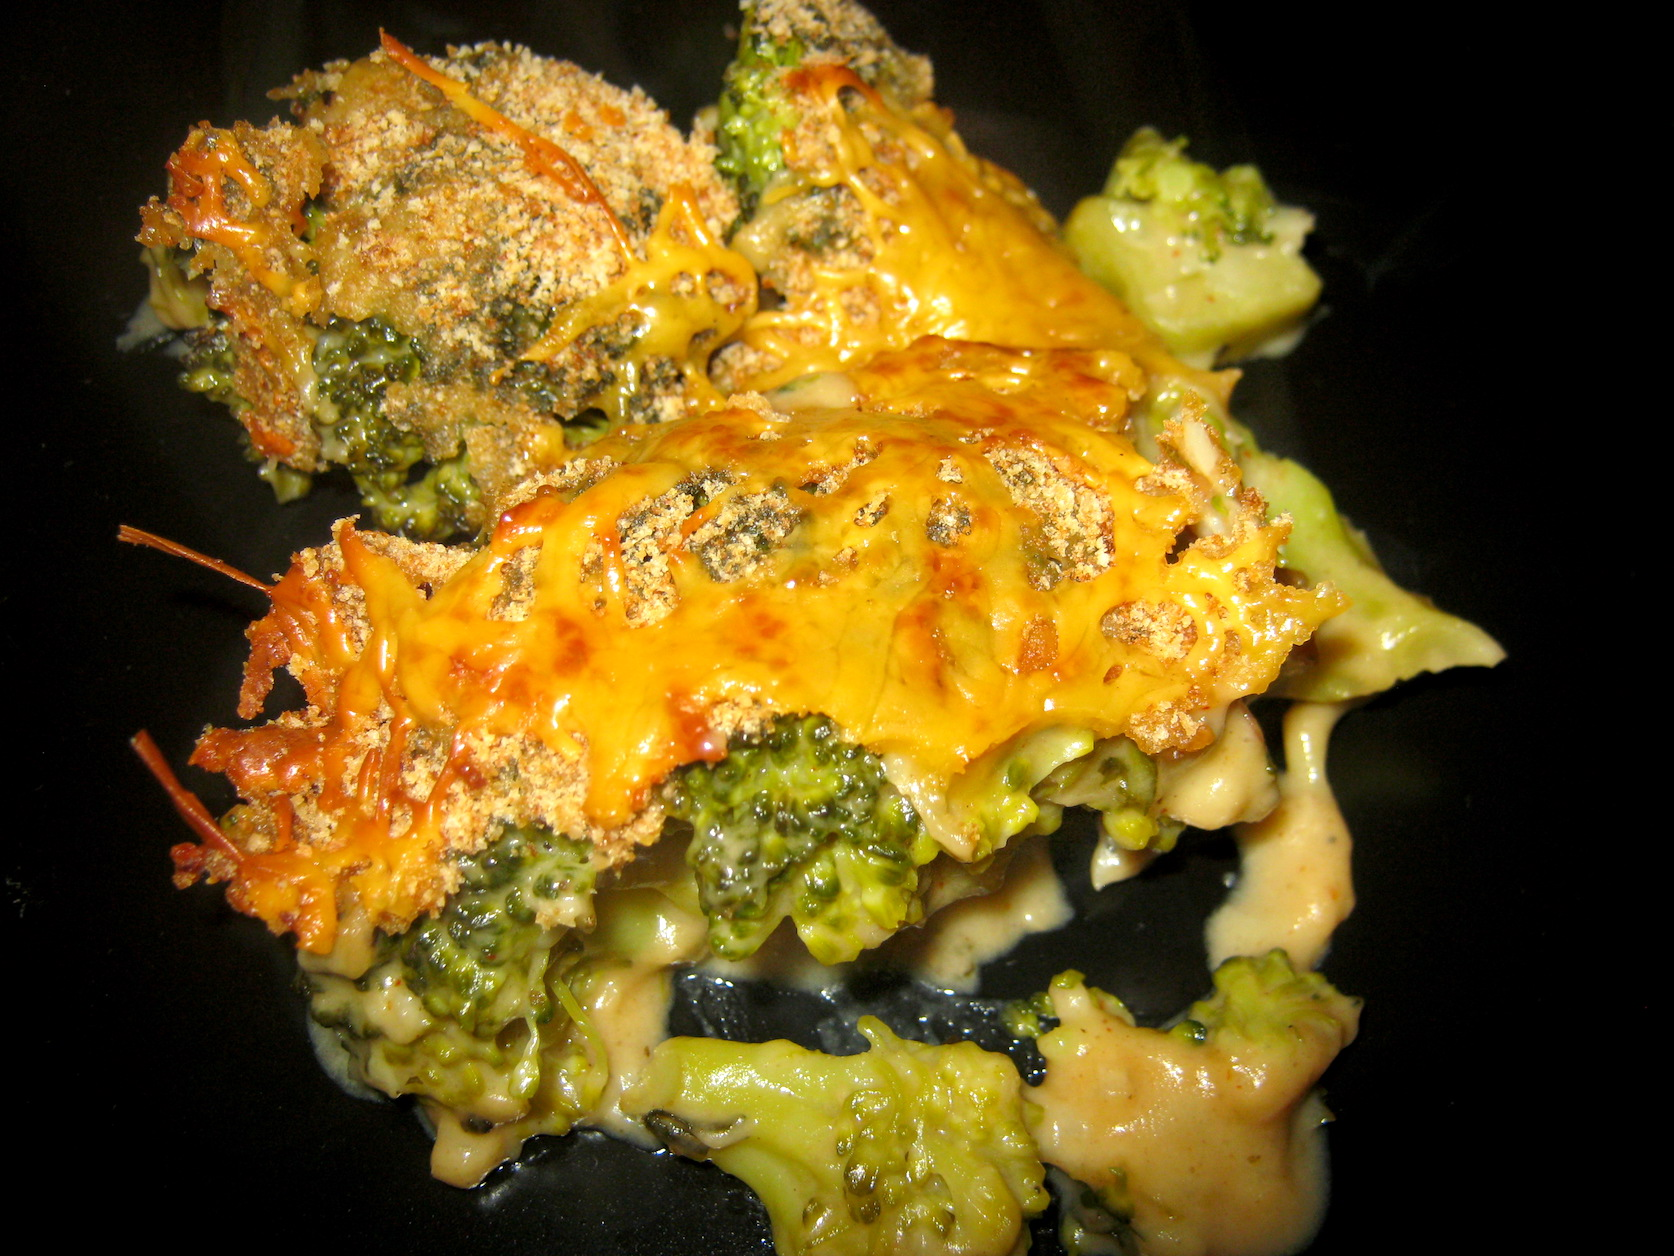 Baked broccoli on a black plate